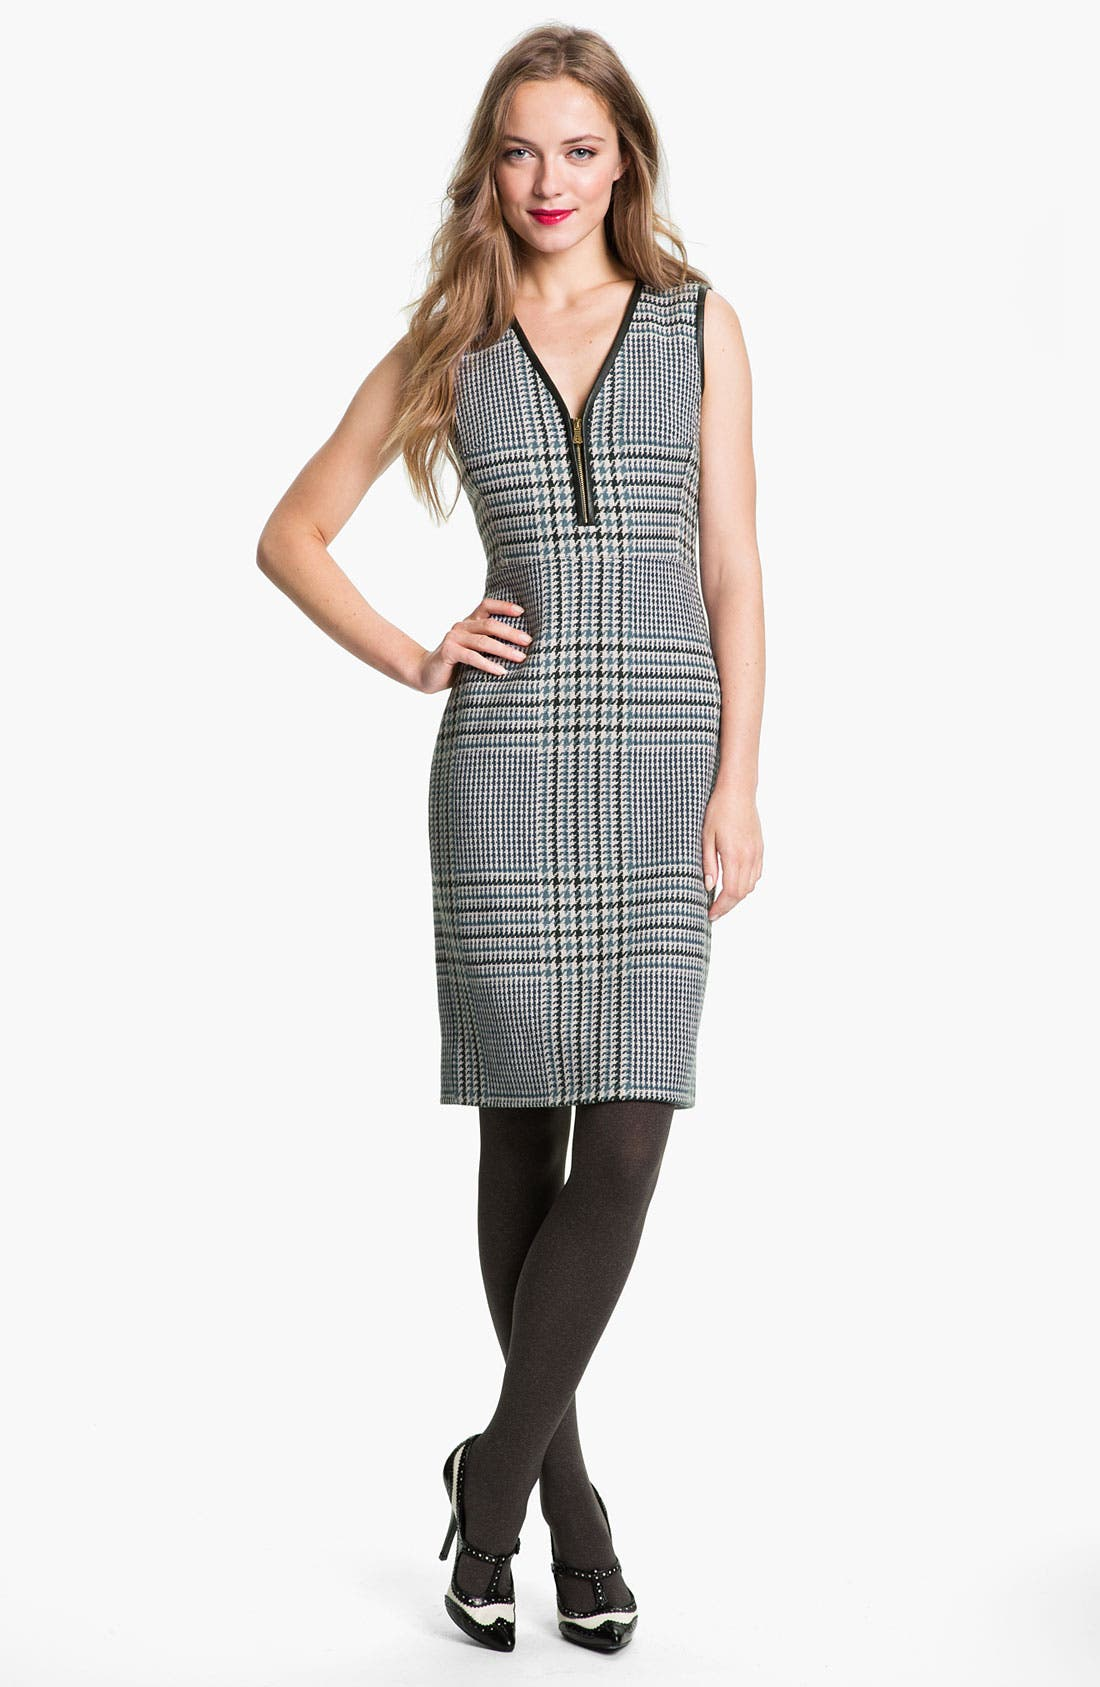 Alternate Image 1 Selected - Tory Burch 'Thandie' Stretch Wool Shift Dress (Online Exclusive)